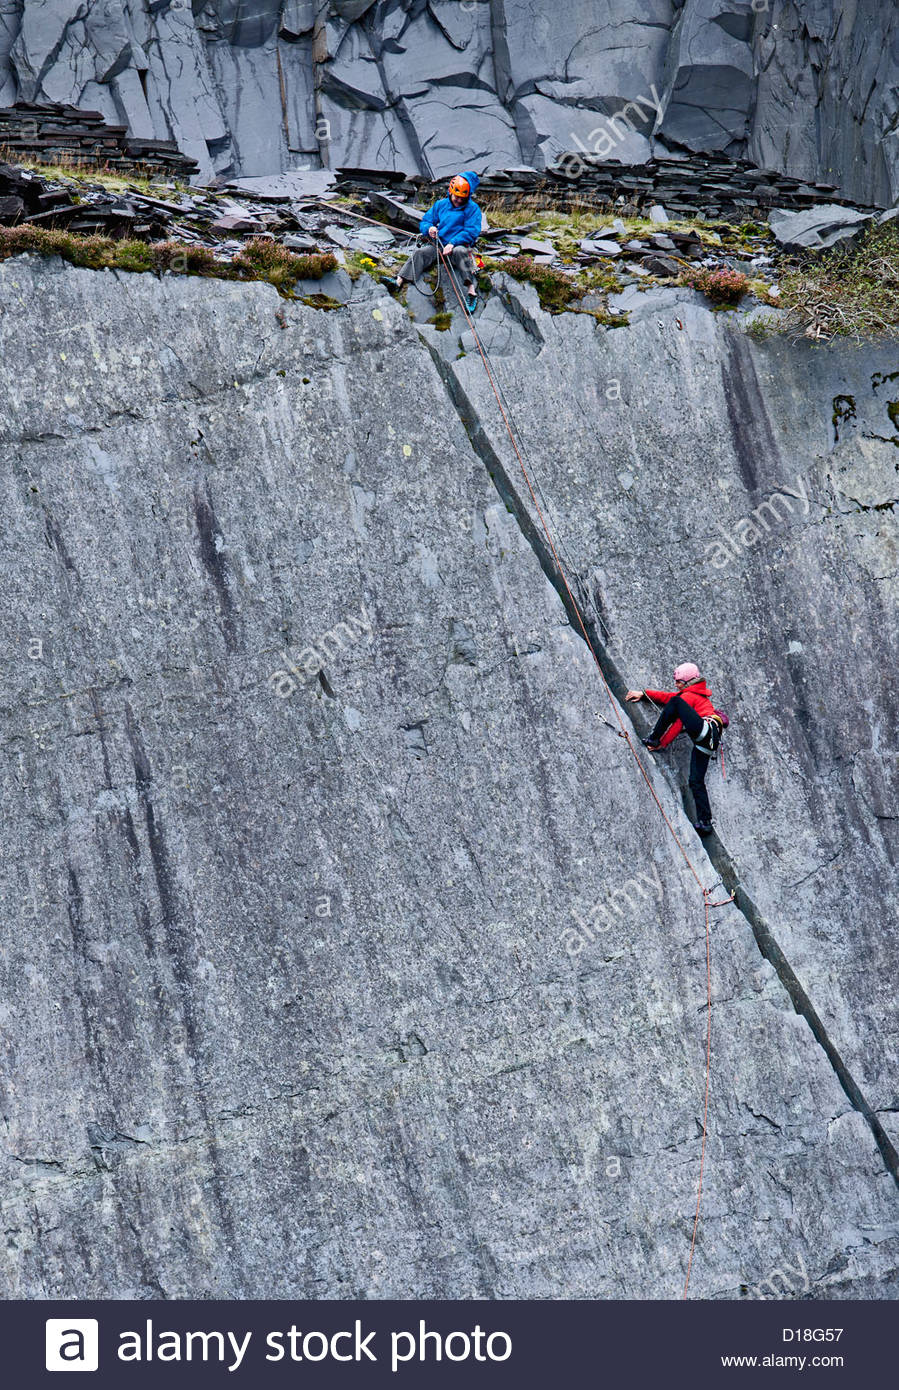 Climbers scaling steep rock face - Stock Image